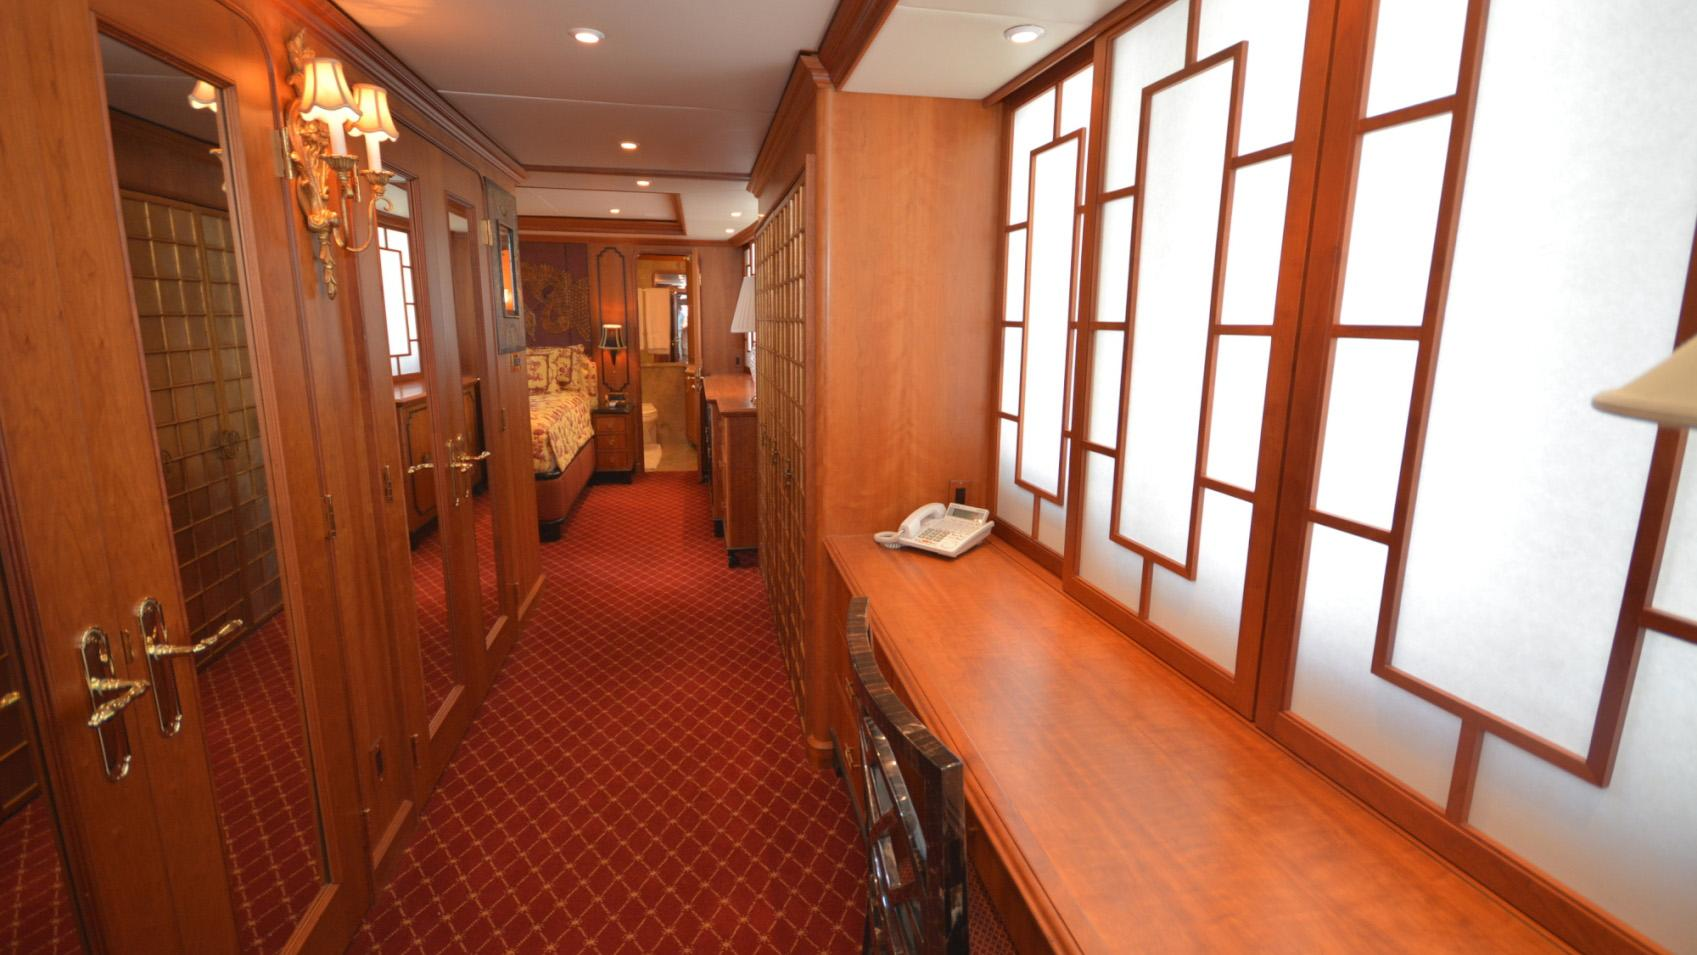 Ar De motor yacht for sale hallway